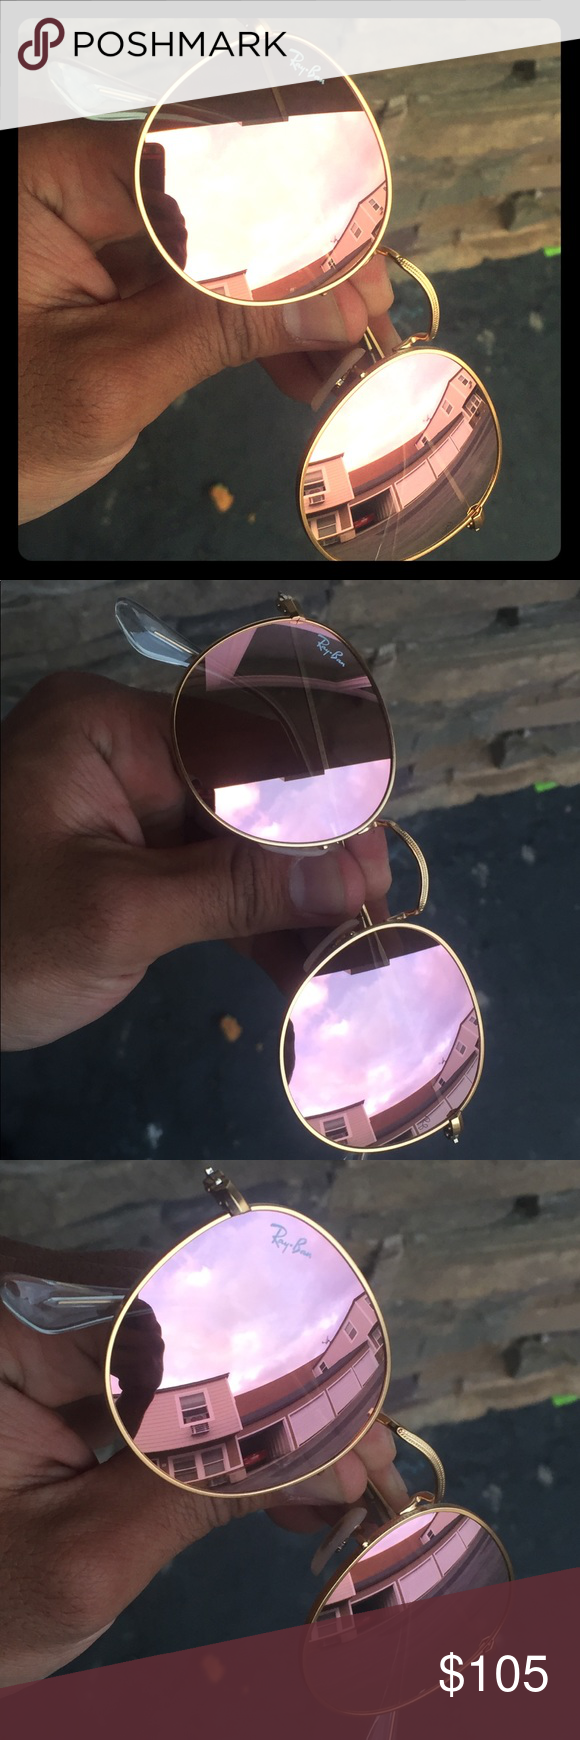 d1ec93dea0e73c Ray Ban RB3447 Round Metal 112 Z2 Pink Mirror 50mm Brand new and authentic Ray  Ban Round Metal 50mm. RB3447 112 Z2 50  21 3N. Matte Gold frame ...